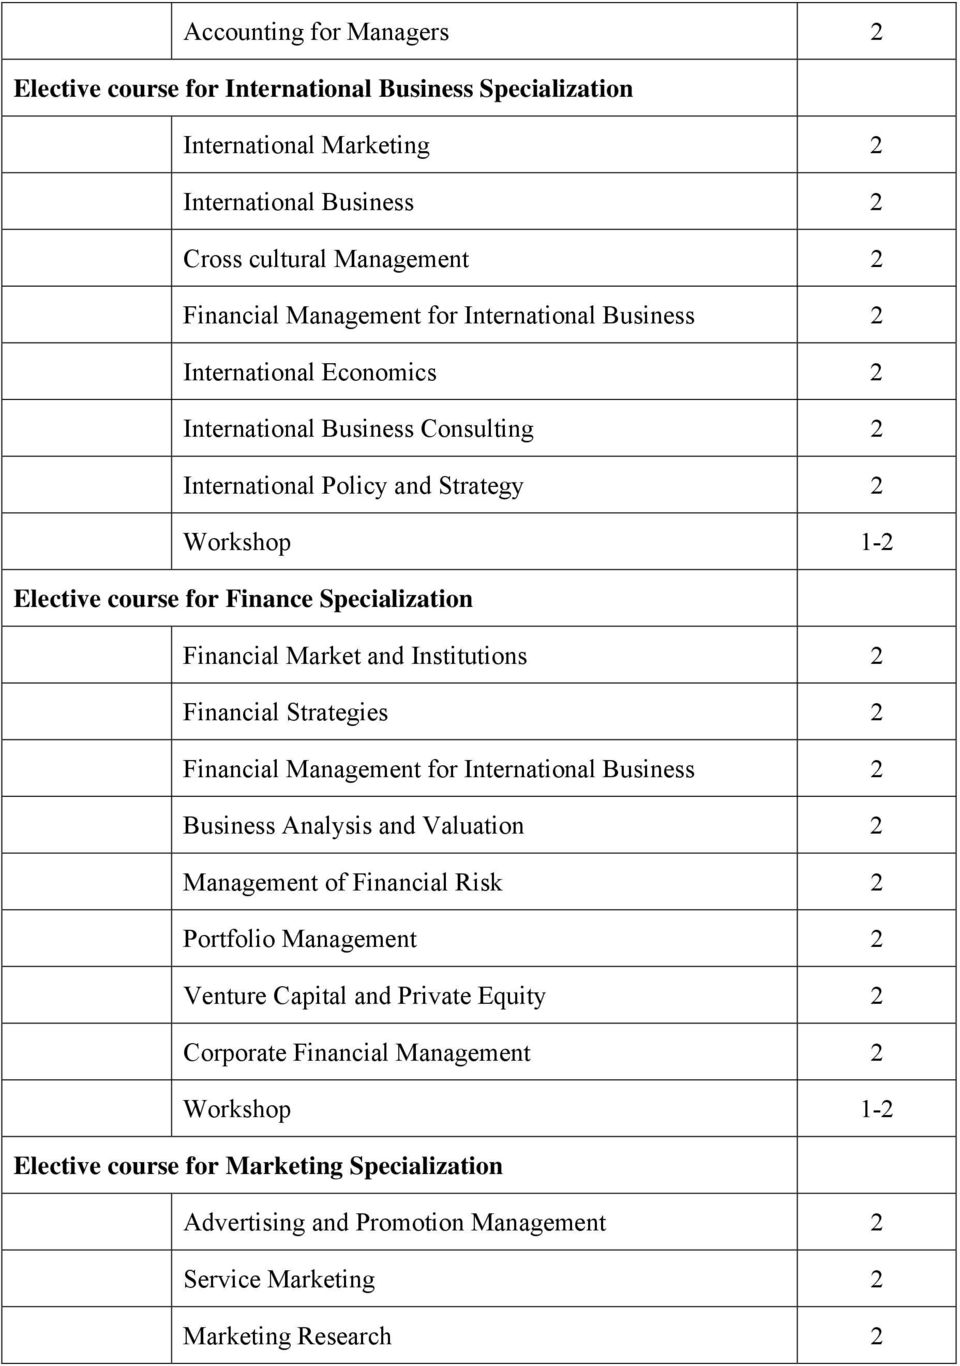 Market and Institutions 2 Financial Strategies 2 Financial Management for International Business 2 Business Analysis and Valuation 2 Management of Financial Risk 2 Portfolio Management 2